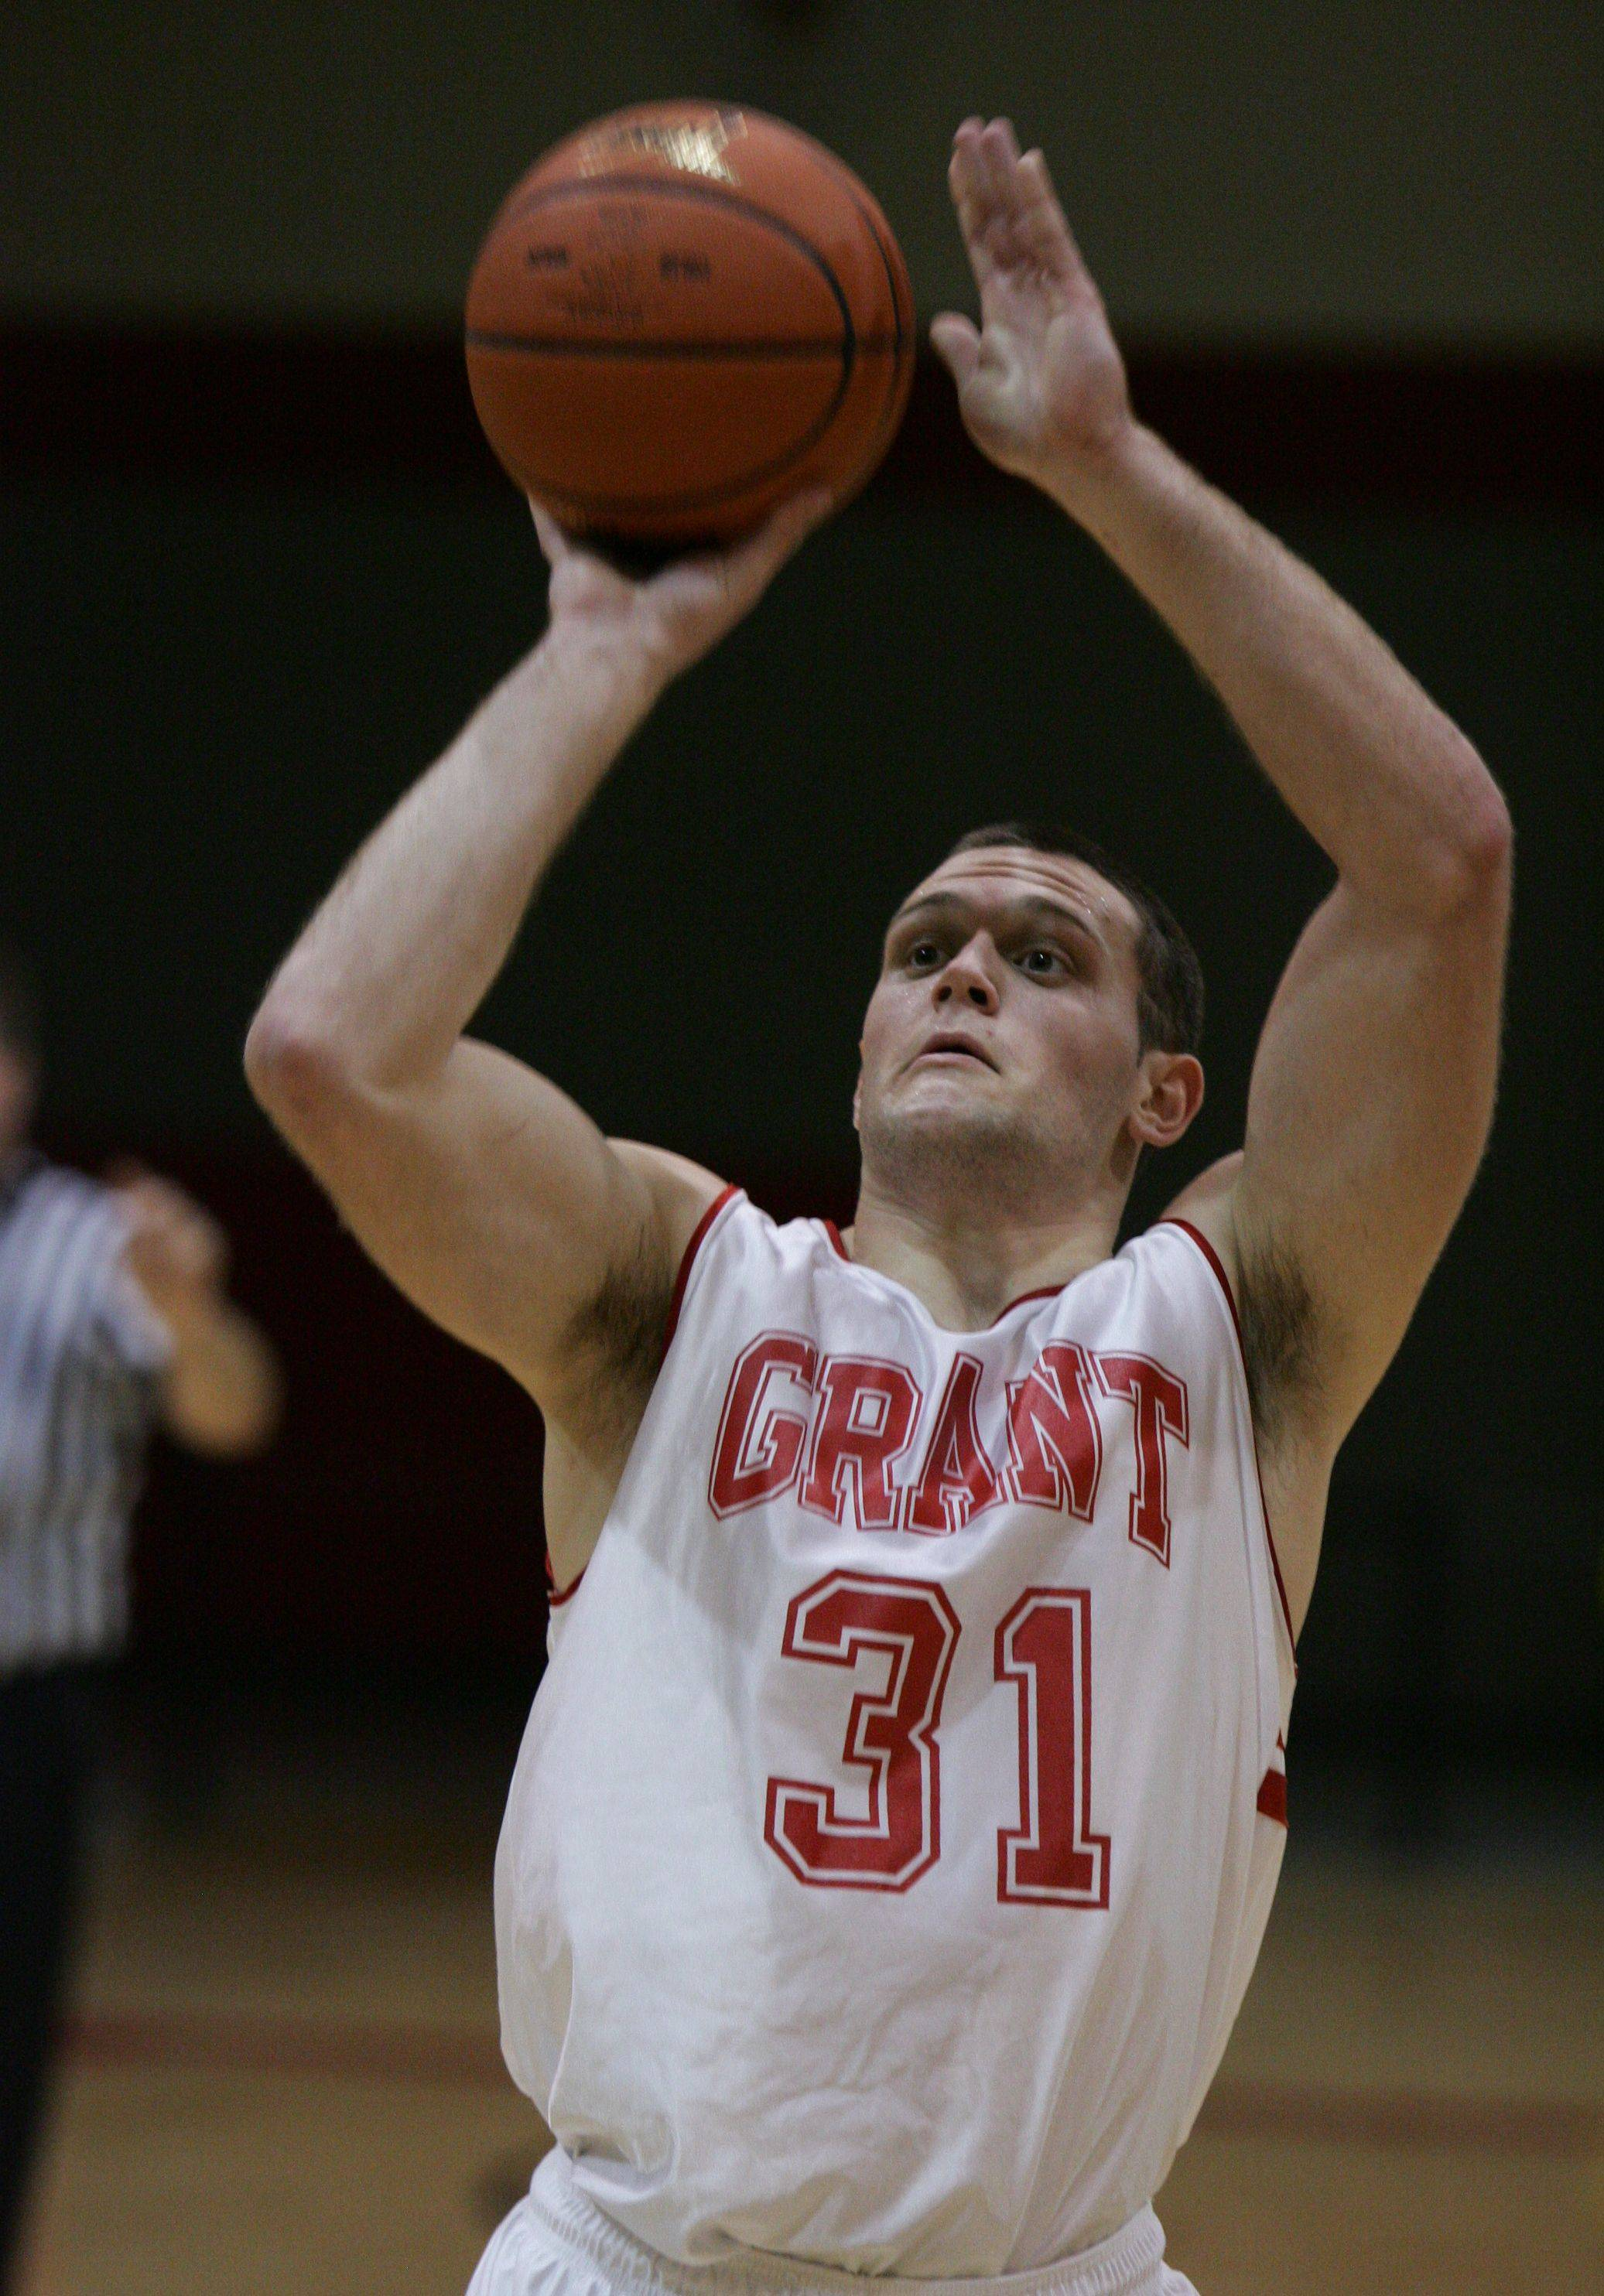 Images from the Round Lake at Grant boys basketball game Monday, December 20.